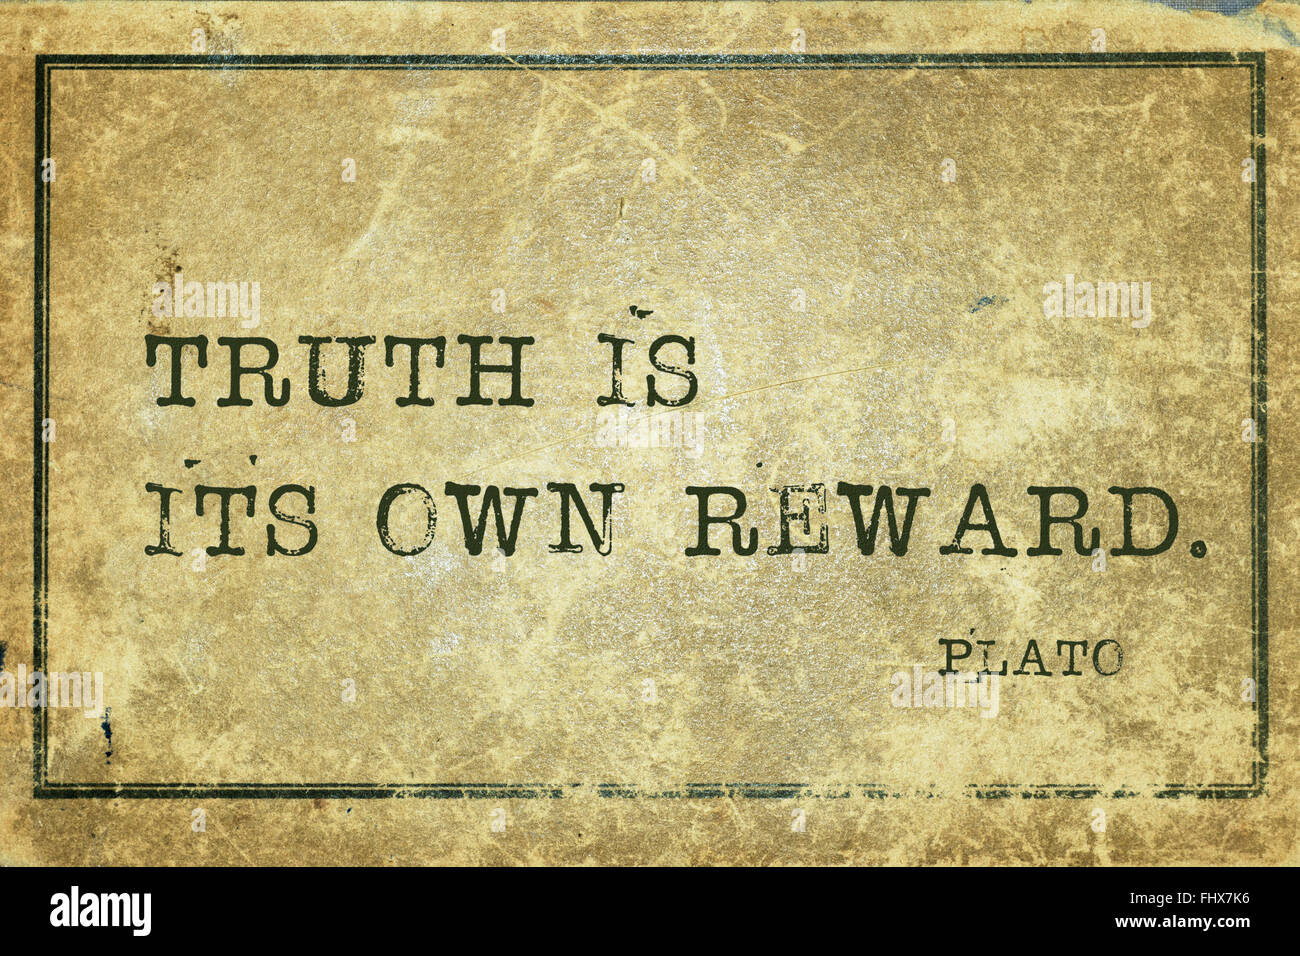 Truth is its own reward - ancient Greek philosopher Plato quote printed on grunge vintage cardboard - Stock Image